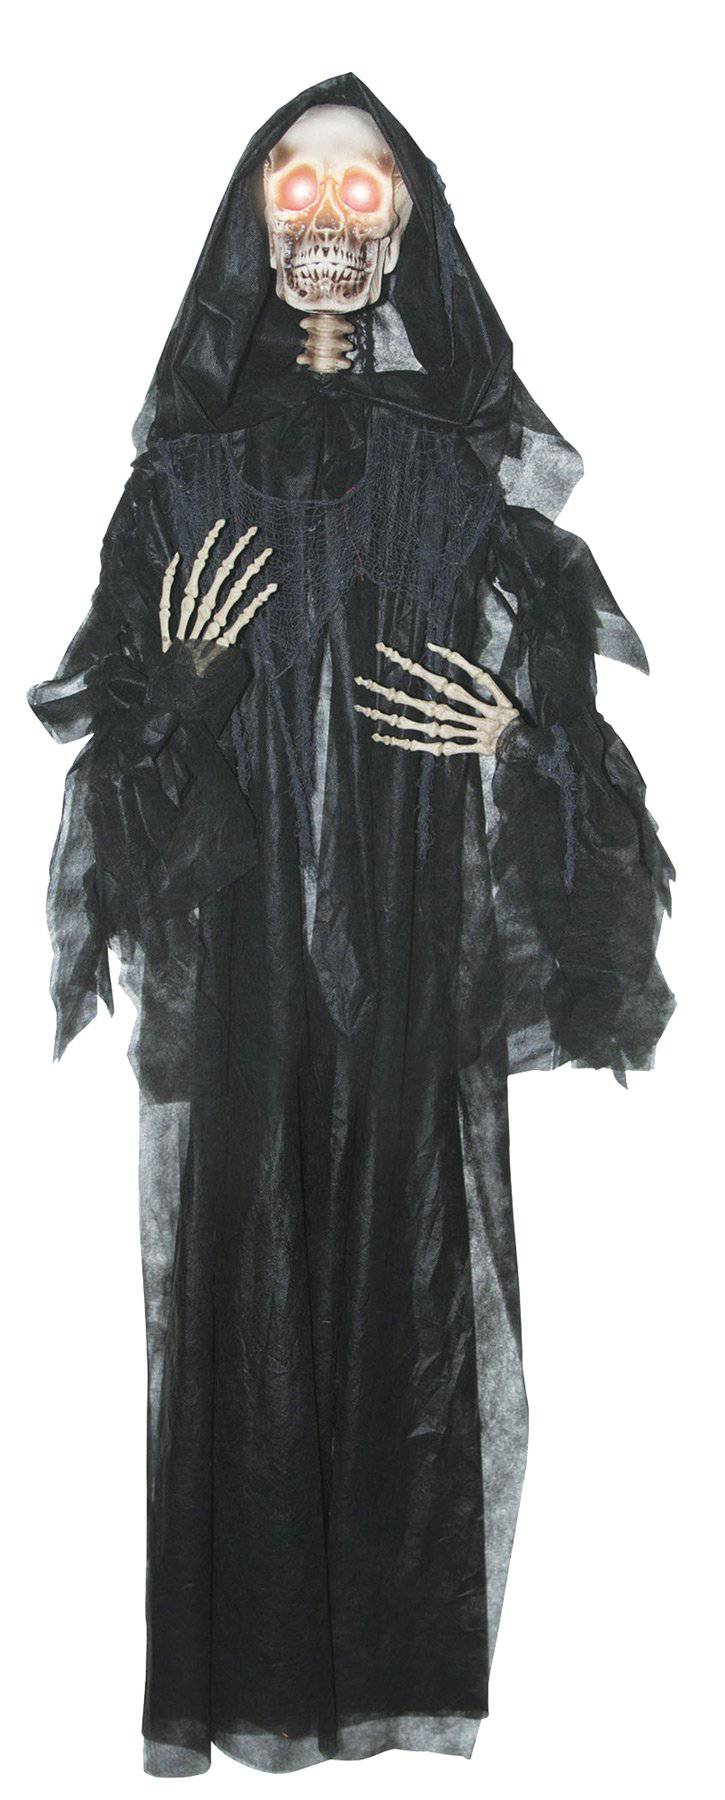 Gemmy (Sun Star) Scary Light Up Reaper Hanging Decorations - Costume Arena